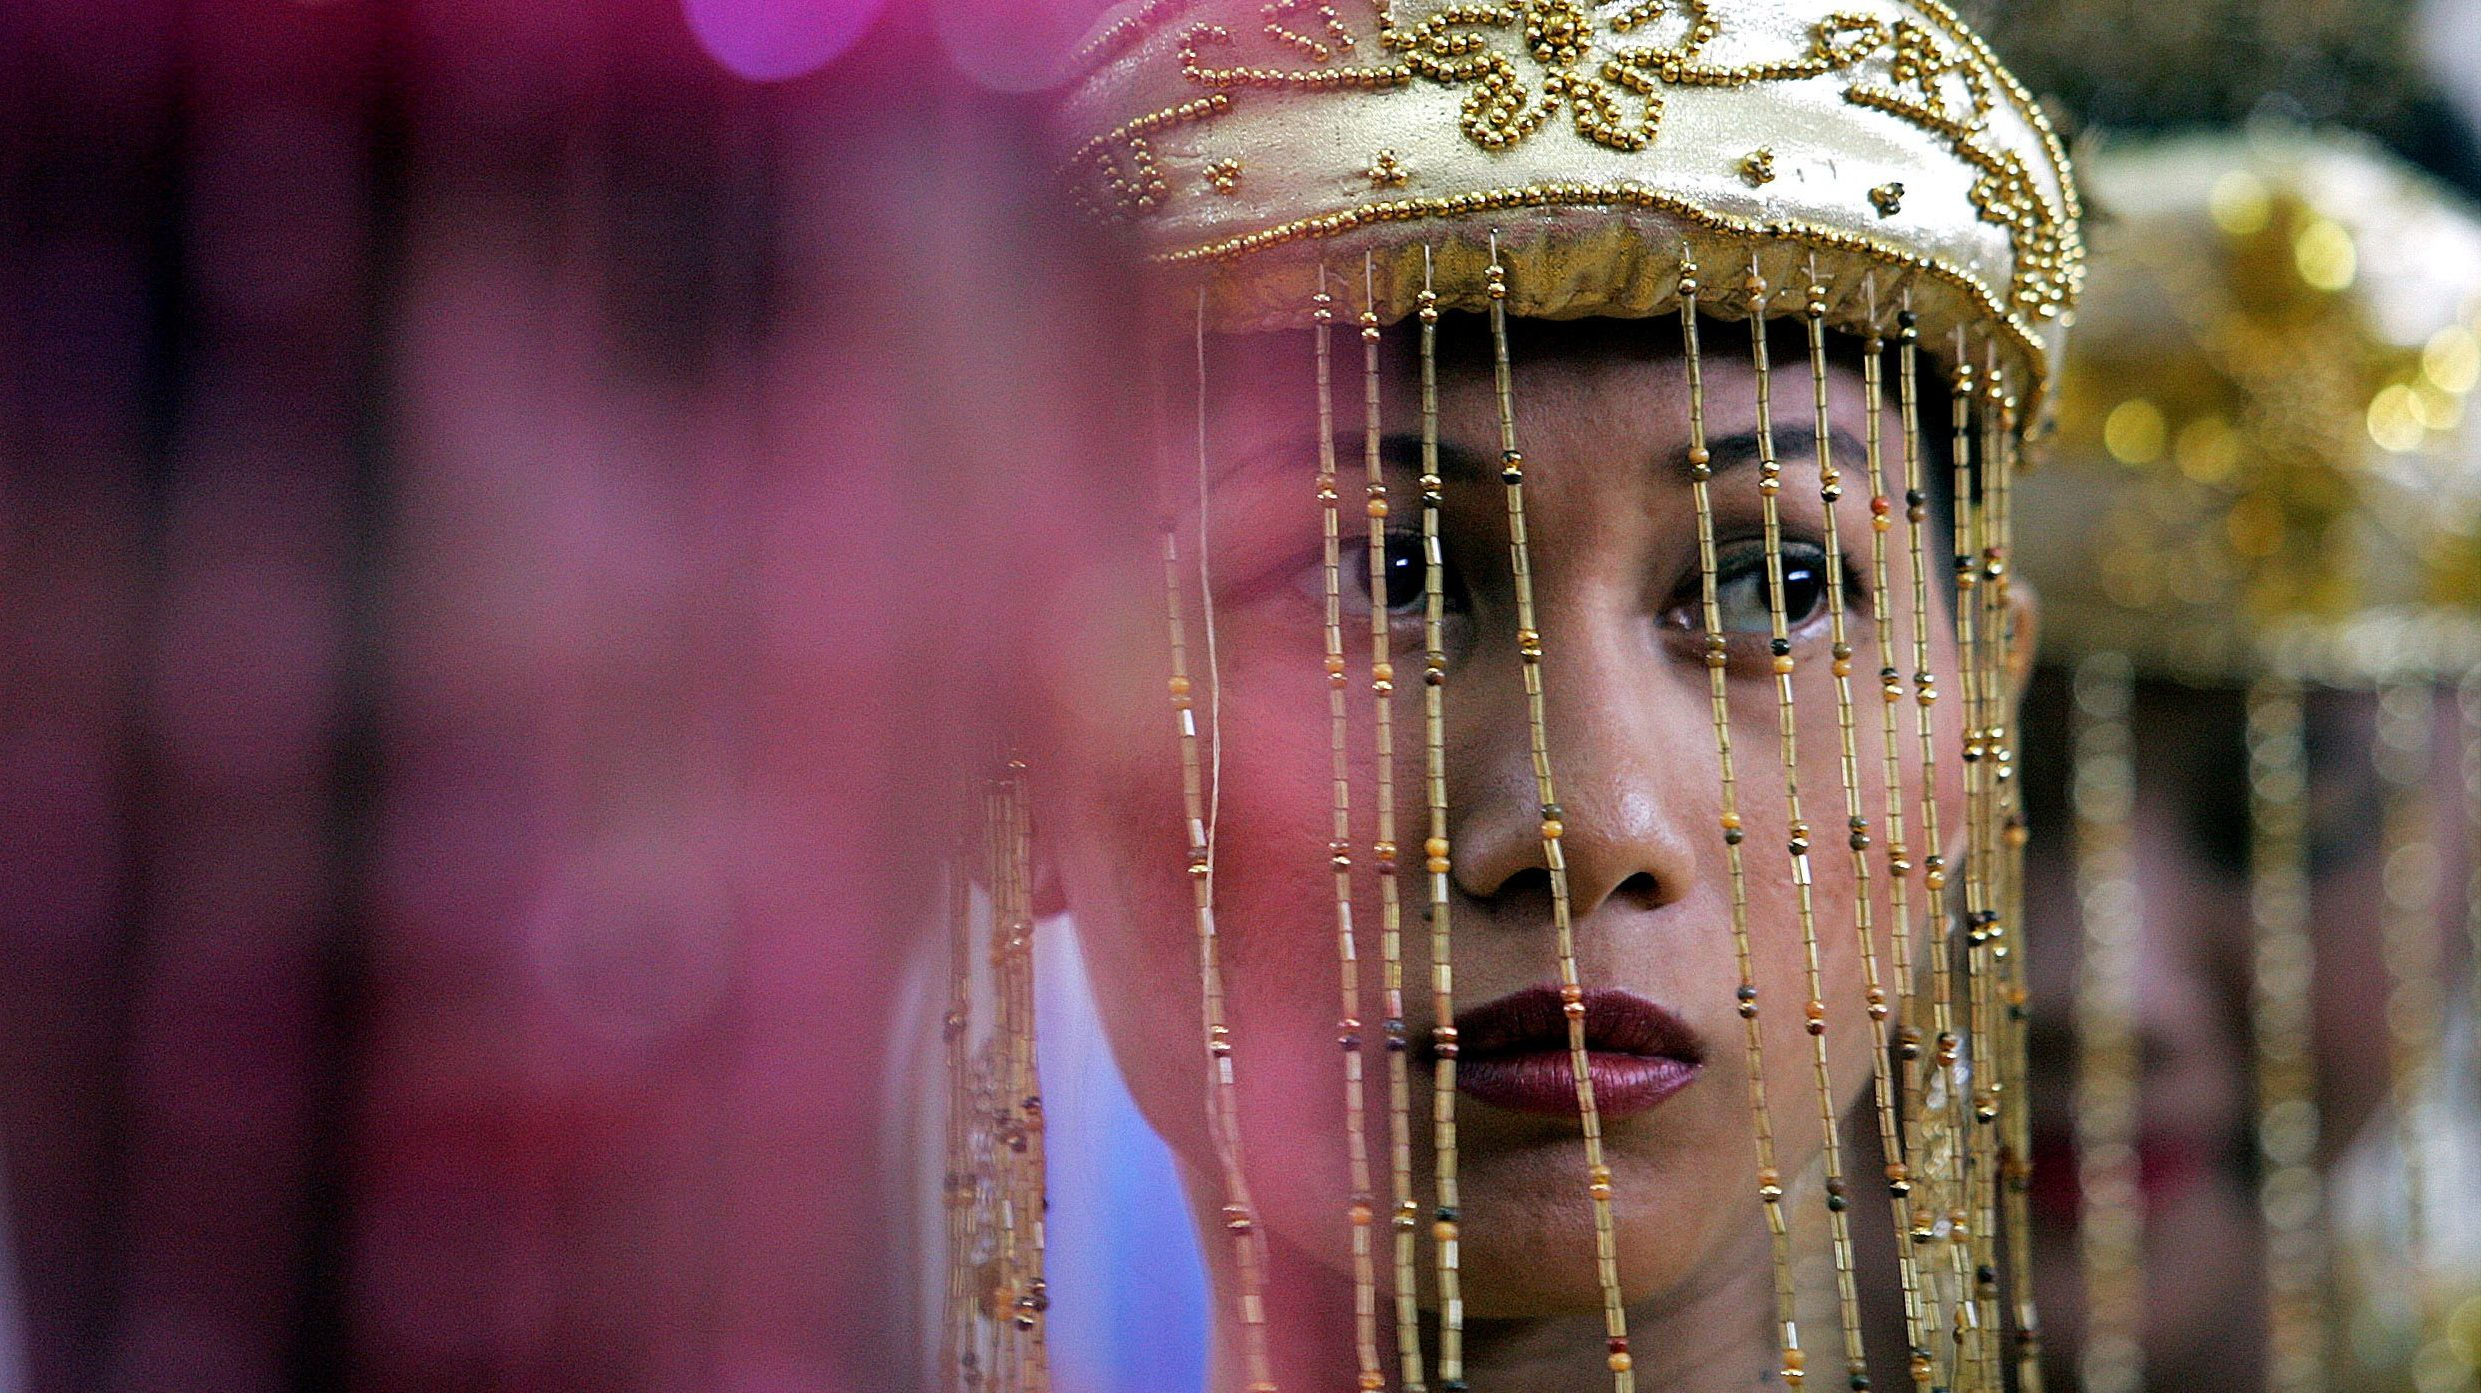 Indonesian woman at a wedding.